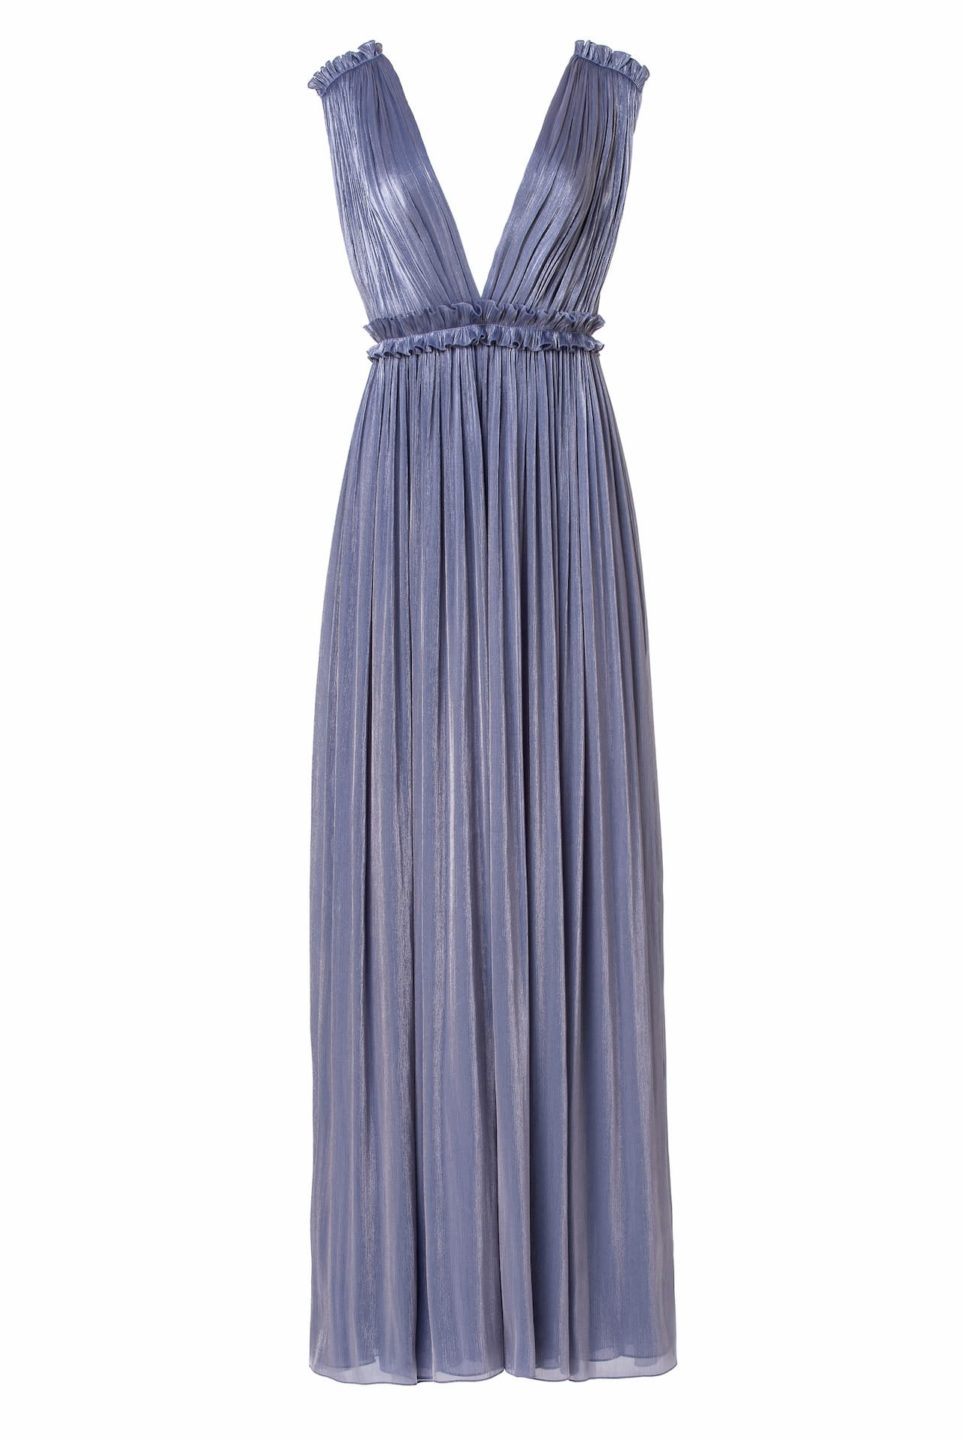 Lorelle PS2155 Blue Iridescent Lurex Georgette Grecian-Draped Gown with Plunging Neckline & Double-Edged Ruffles